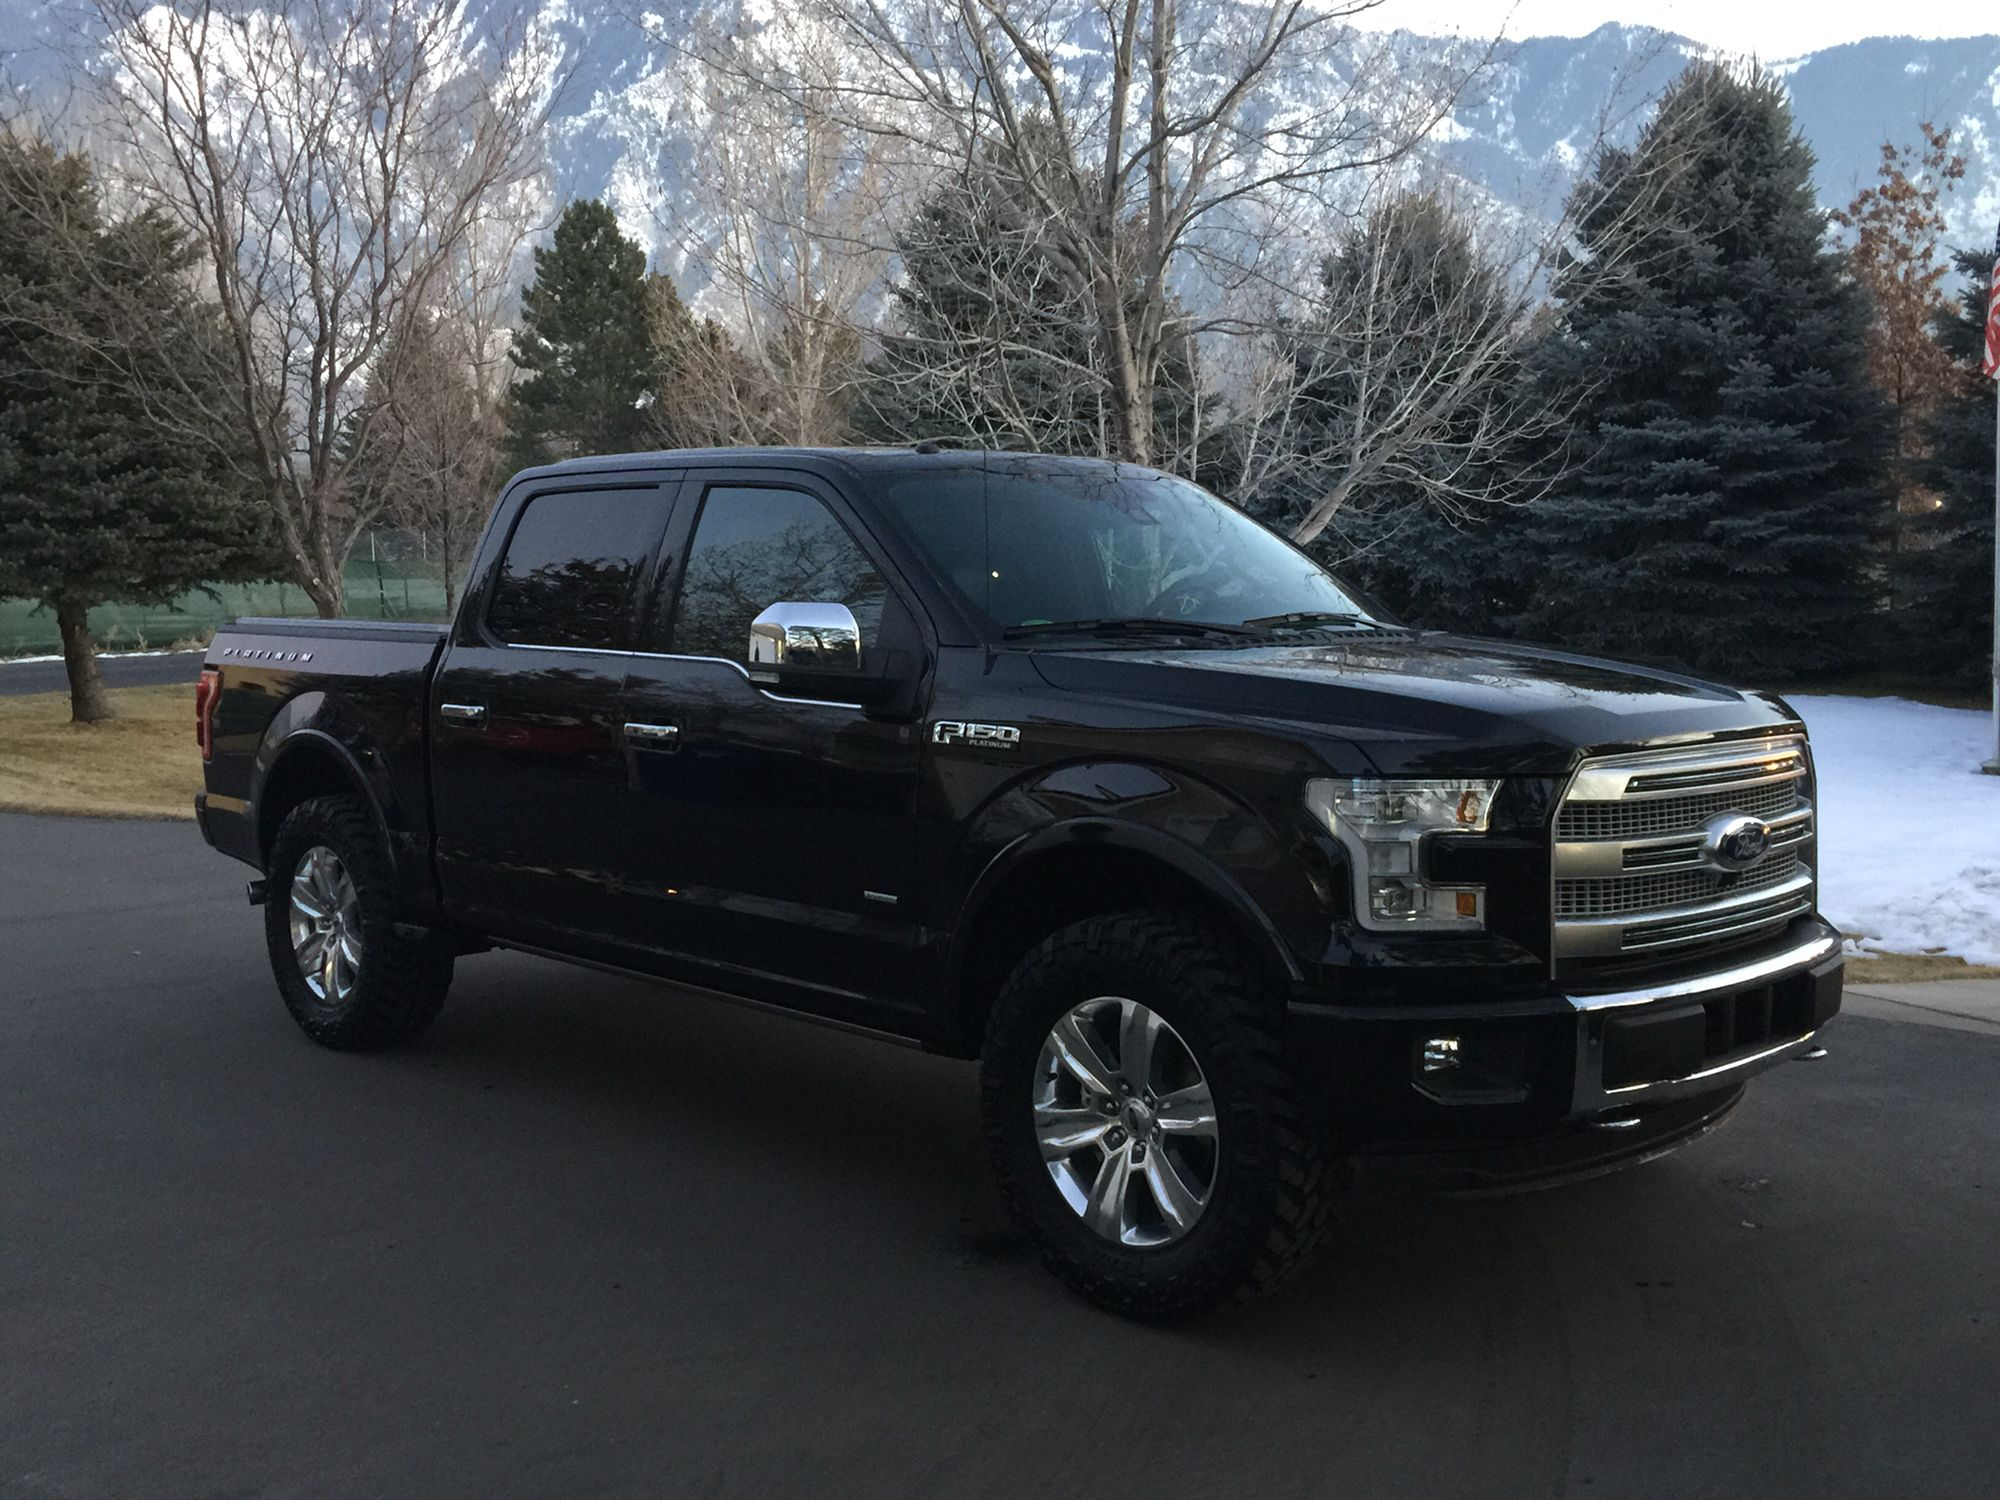 Ford f 150 lift kits 2016 car release date - 2015 F150 Platinum Leveling Kit 35 Tires